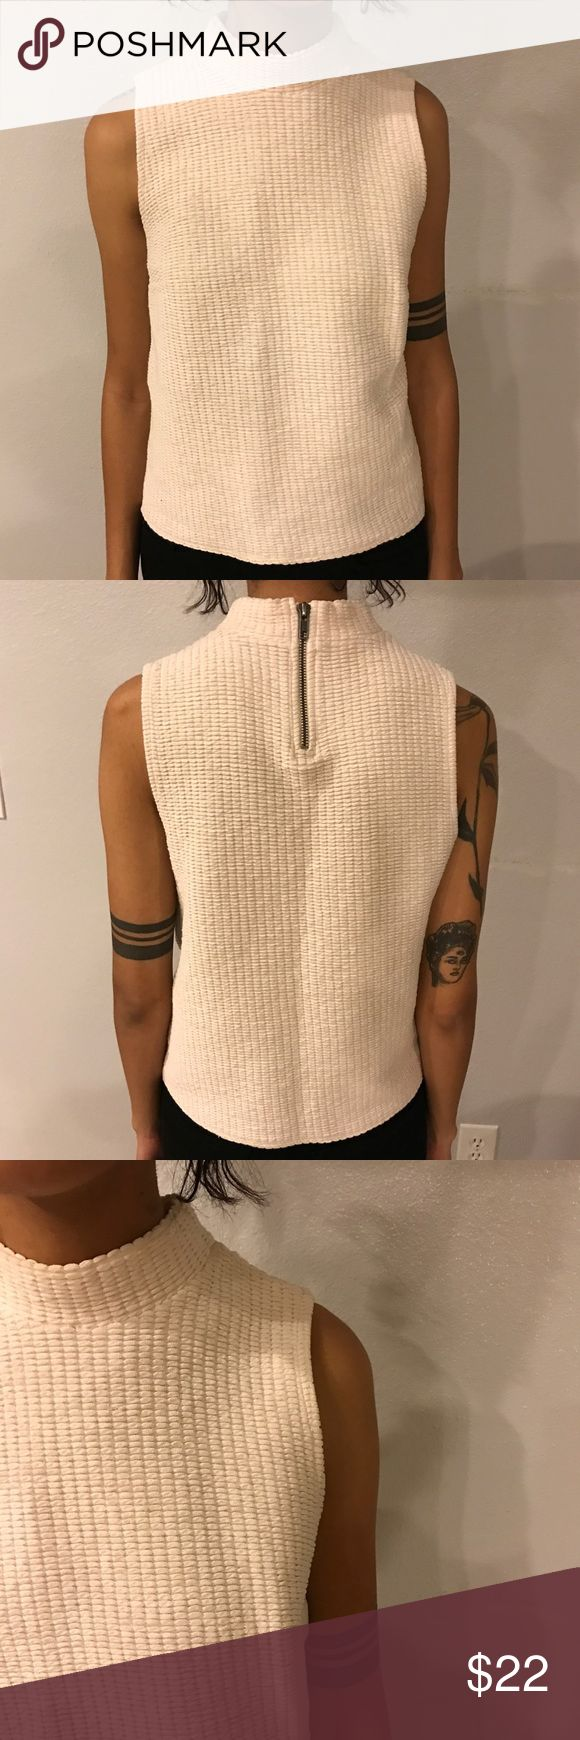 Quilted Topshop Top Super cute and soft cream quilted mock neck tank! Features a zipper on the back of the neck. Great versatile piece for the winter and spring! Topshop Tops Tank Tops